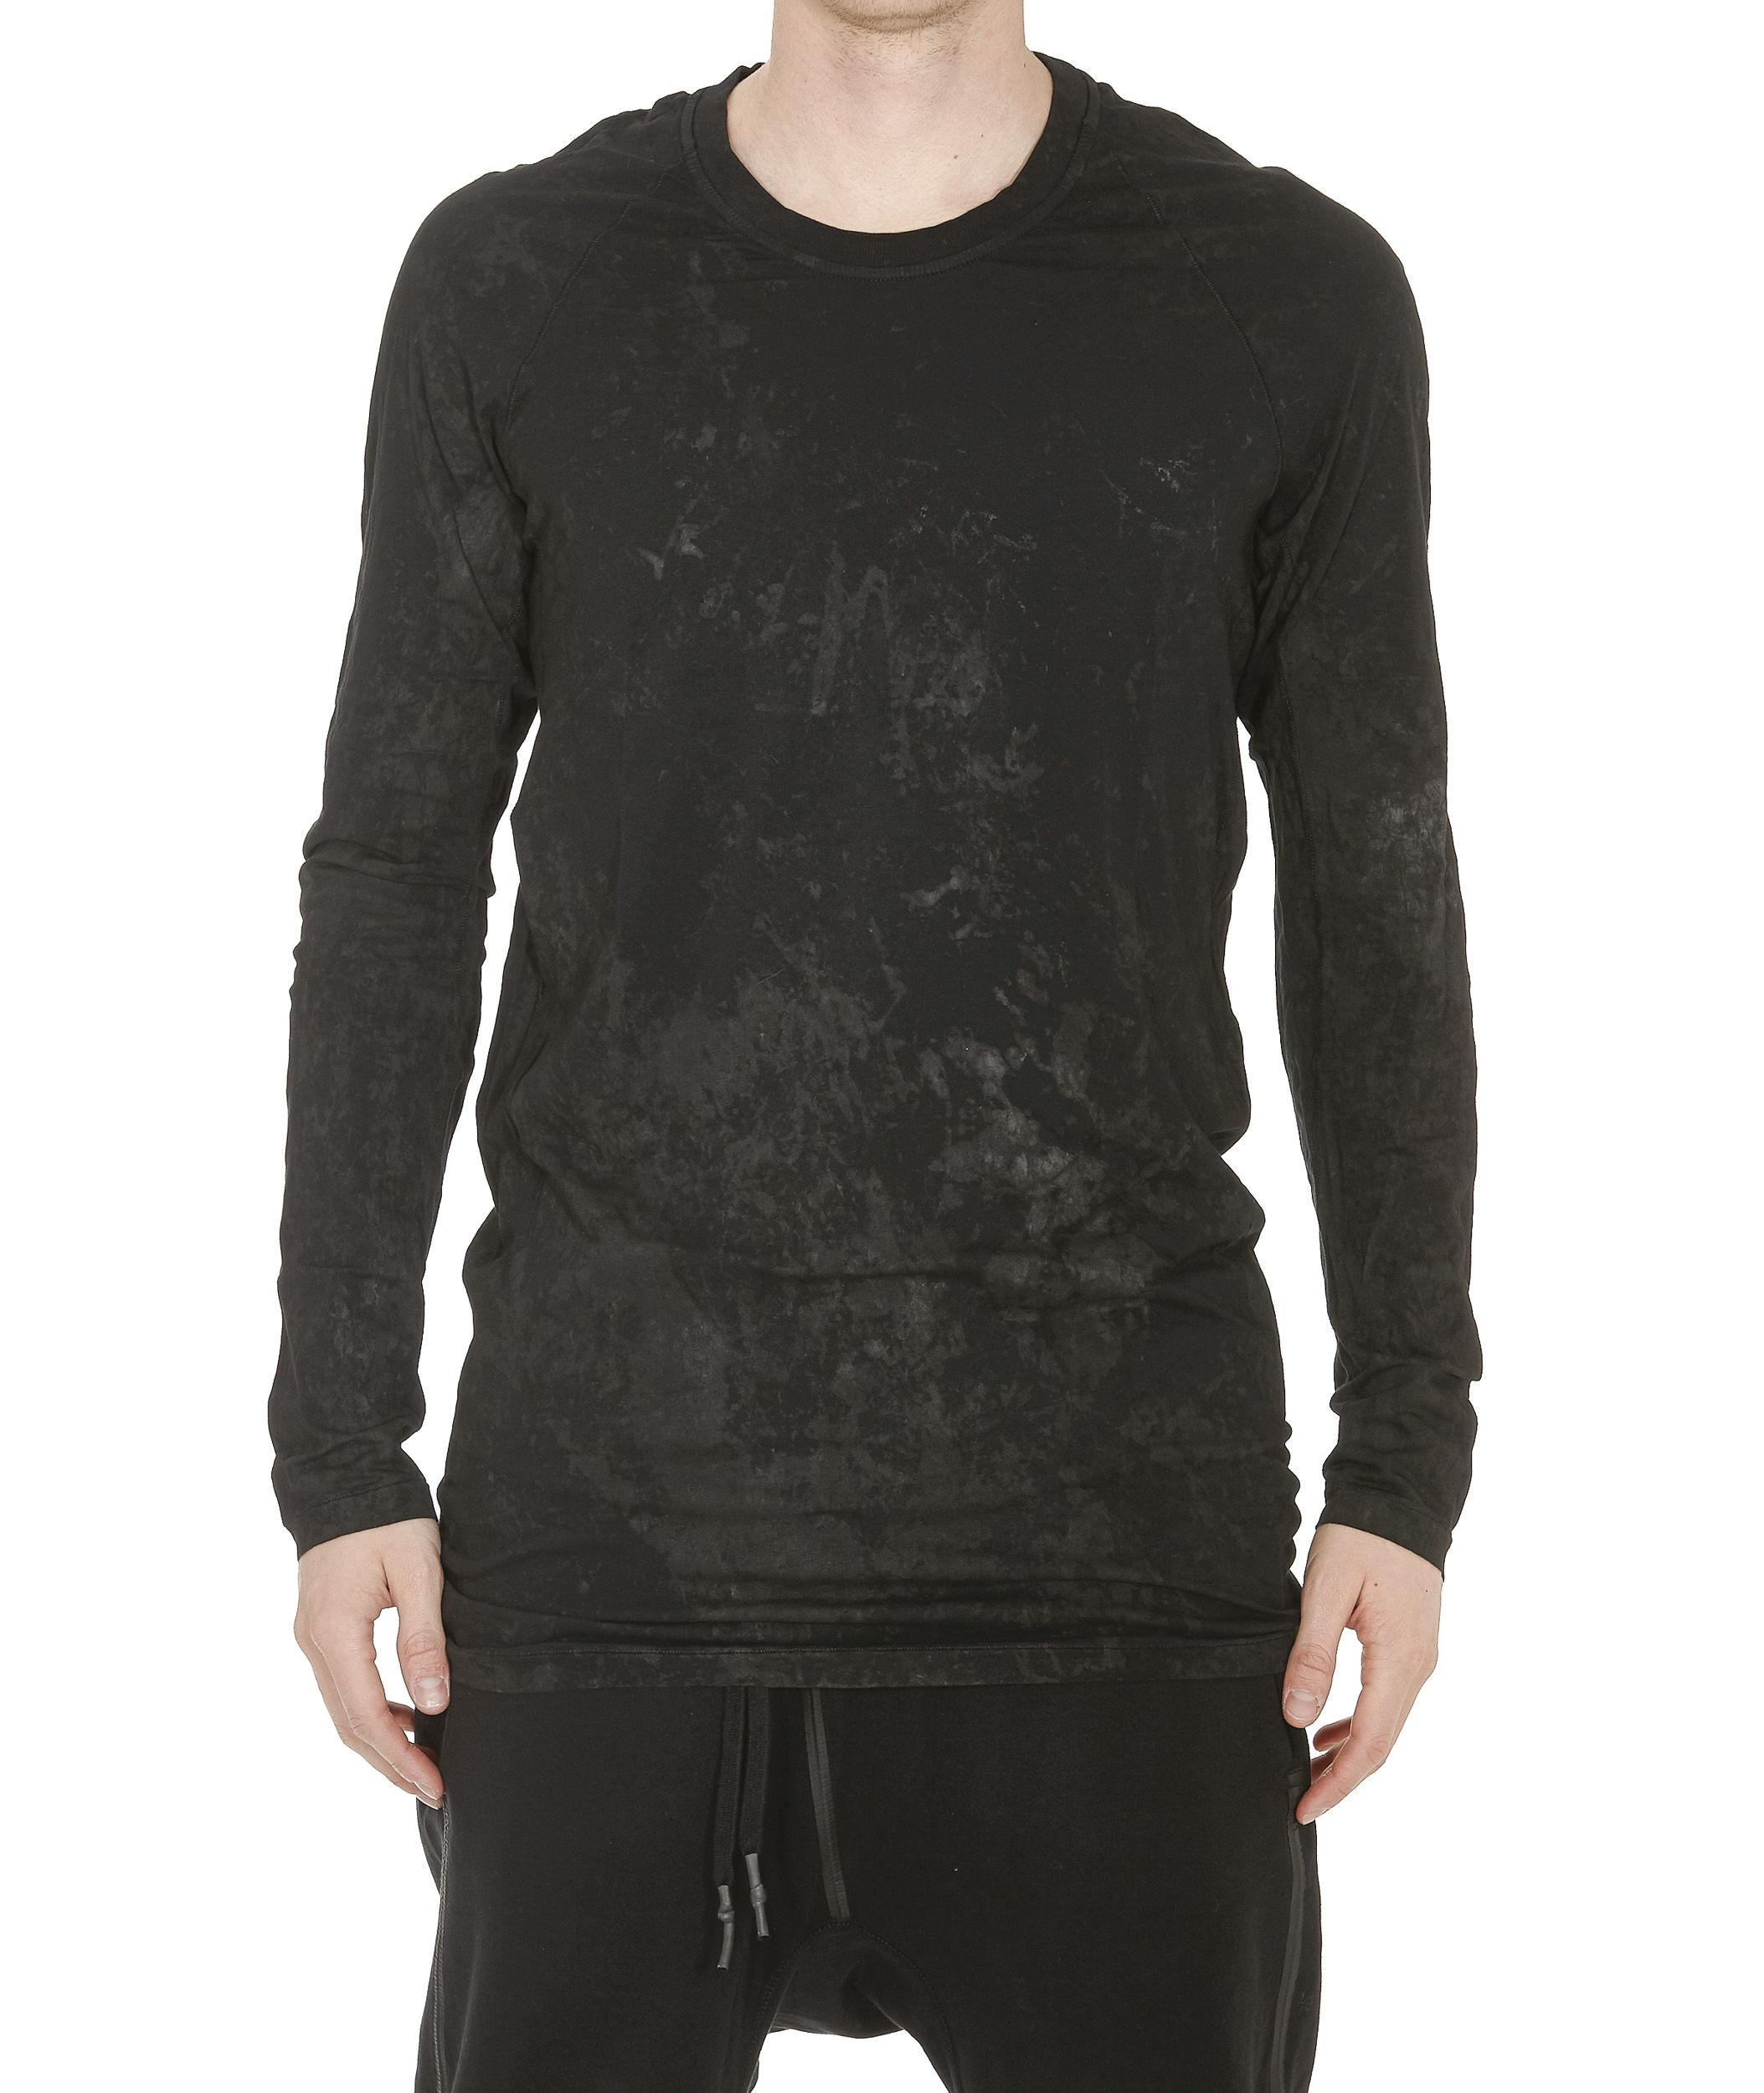 11 By Boris Bidjan Saberi Sweatshirt